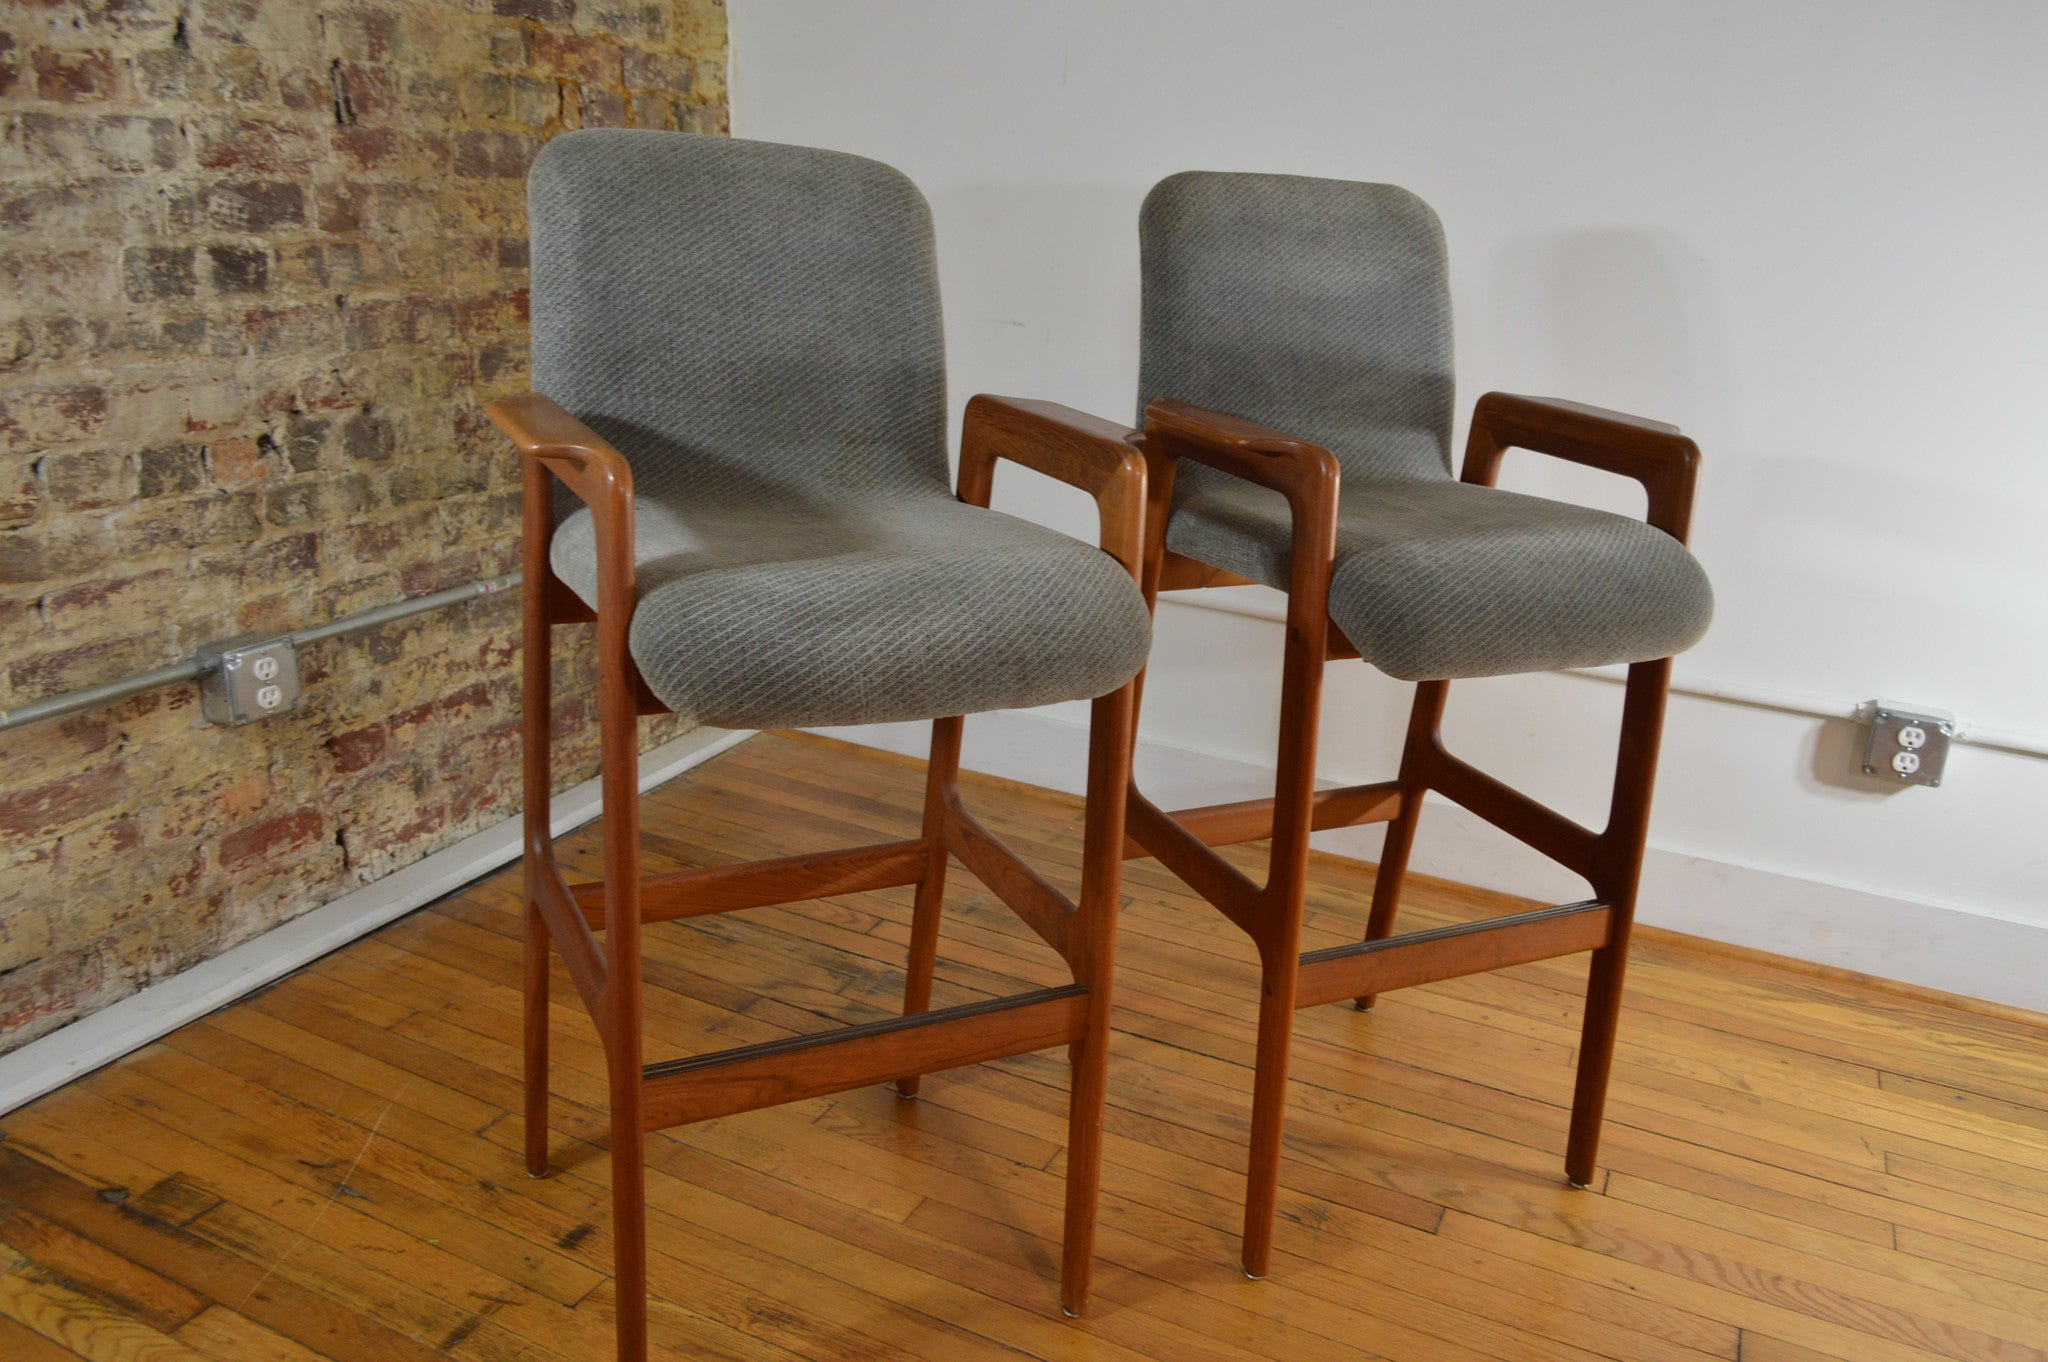 danish teak bar stools tall with arms set of 2 two tall midcentury modern